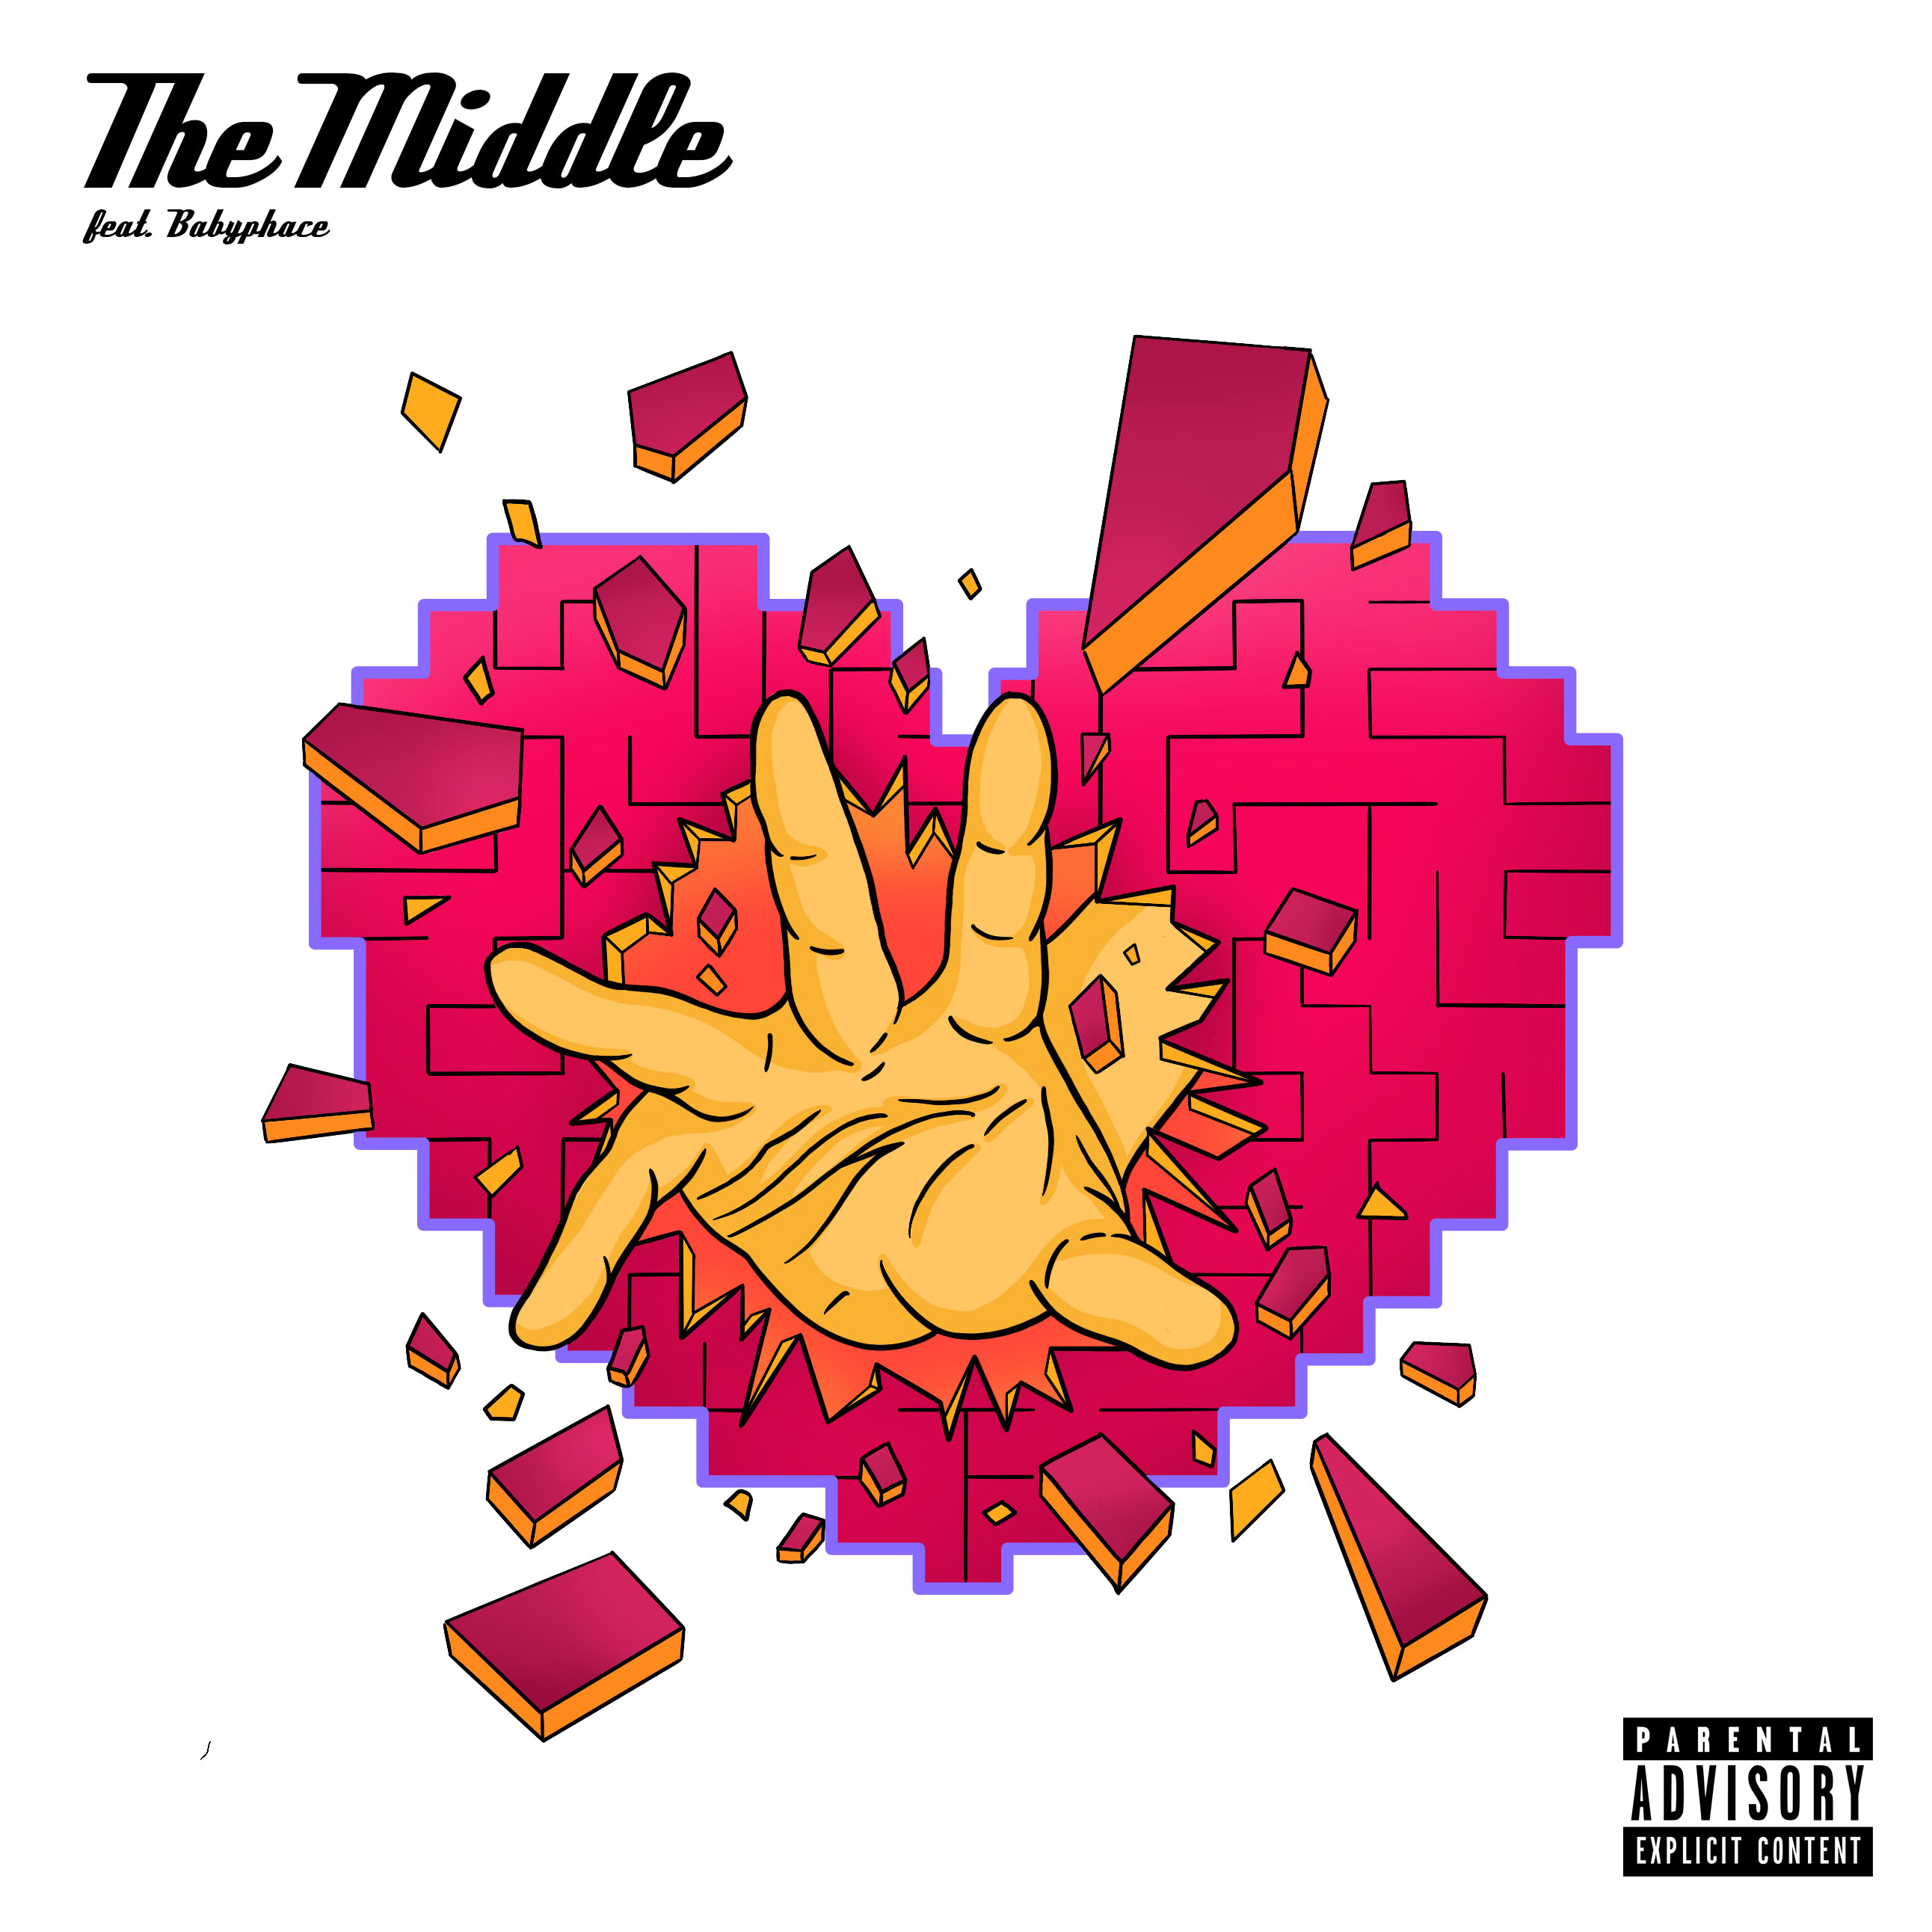 The Middle art work